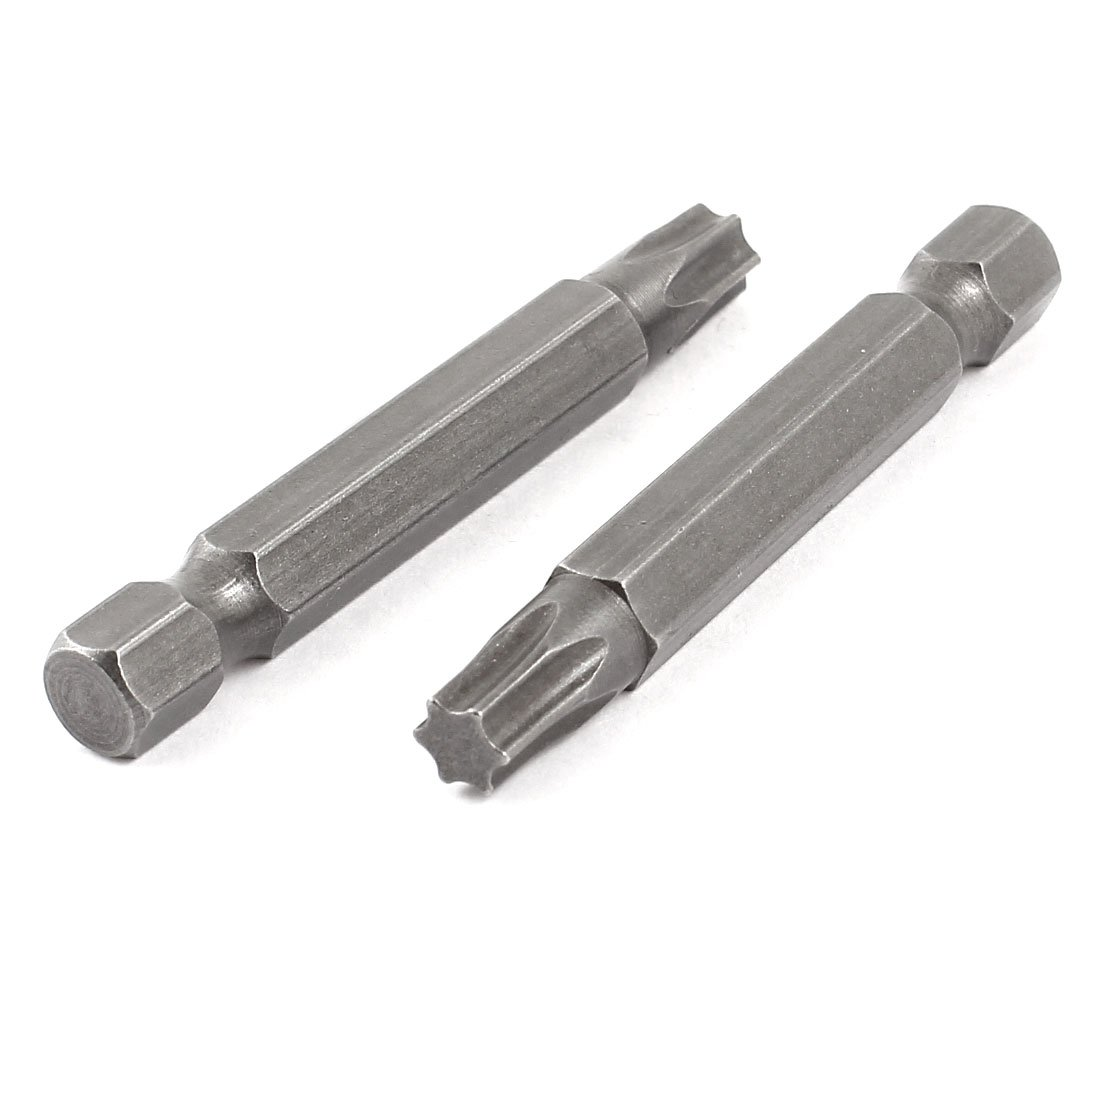 Lot de 2/ embouts pour tournevis Torx T30/ 5,3/ mm pointe magn/étique 6,3/ mm /à queue hexagonale